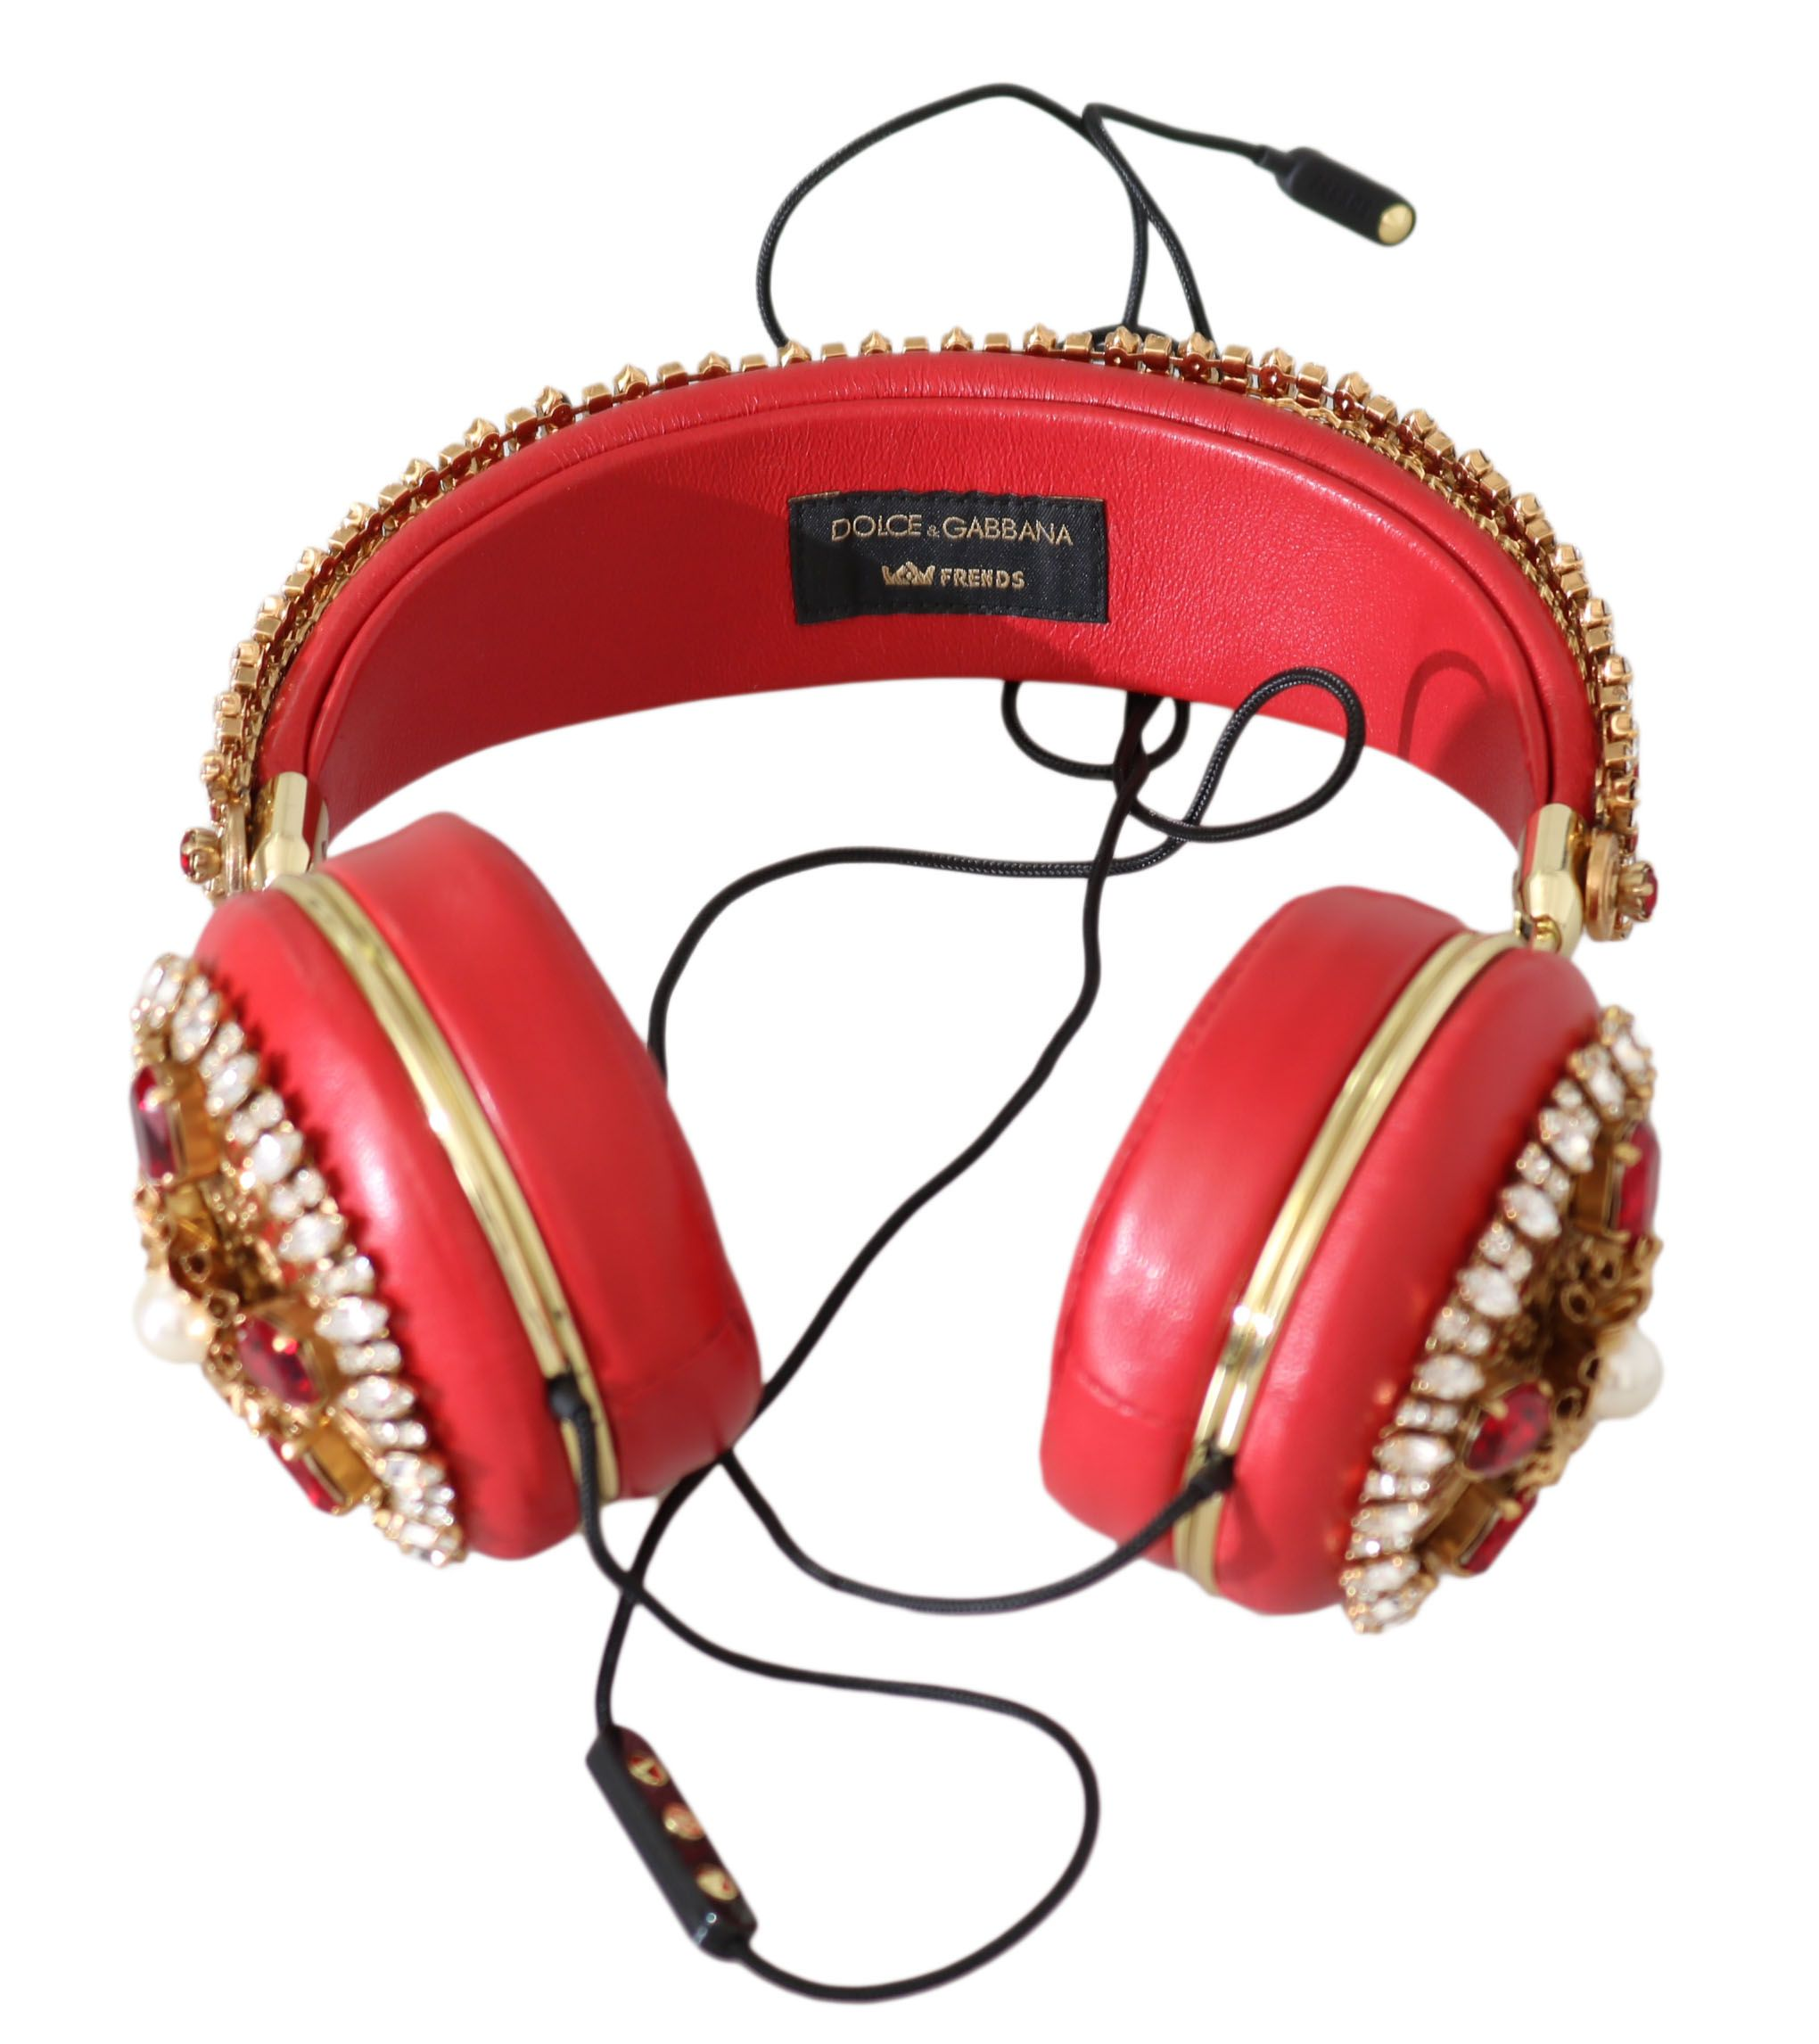 Dolce & Gabbana Red Crystal Studs Leather Headset Audio AUX  Headphones